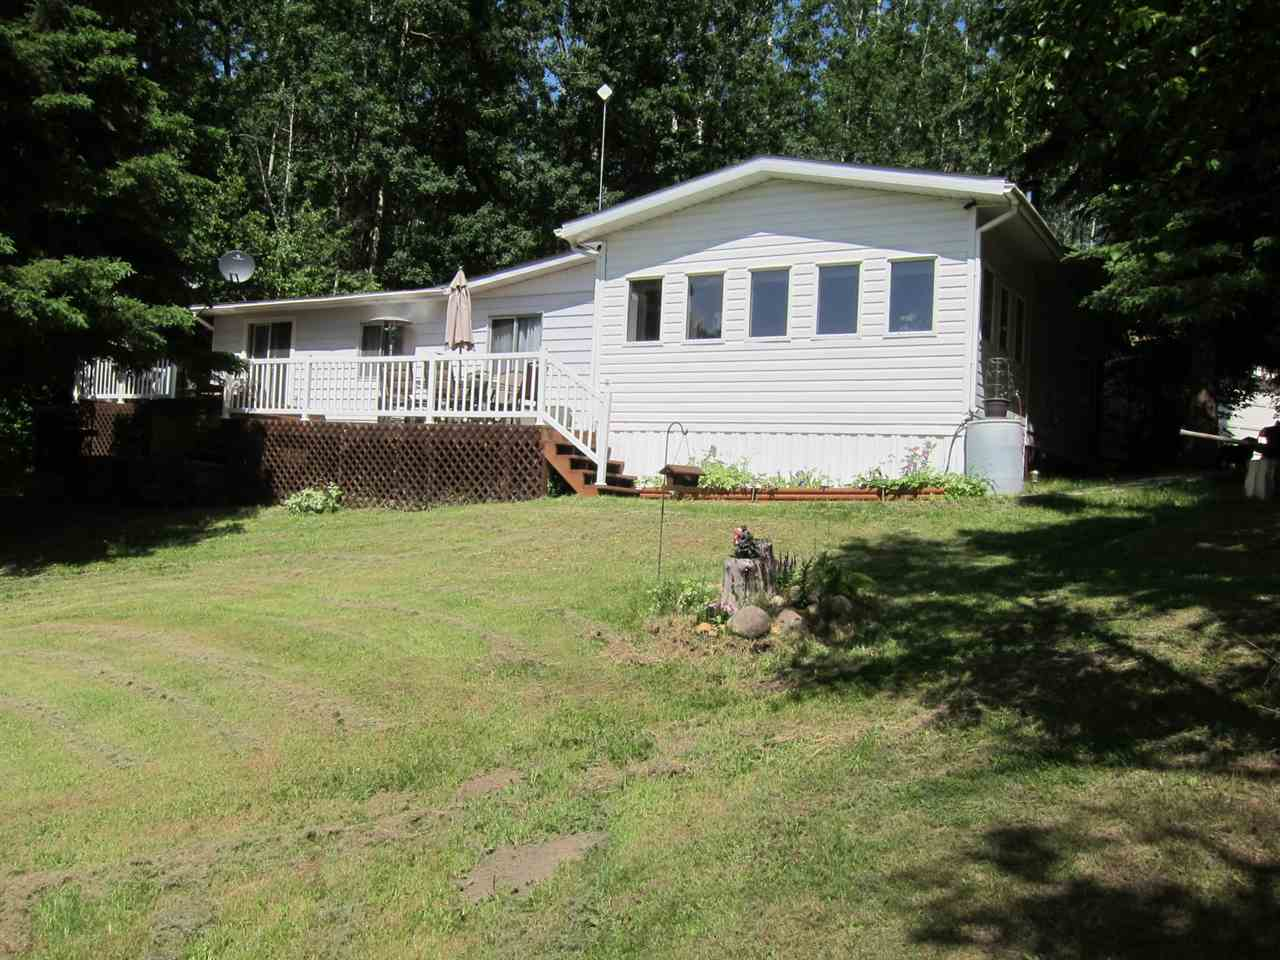 Photo 6: 1401 TWP RD 540 Road: Rural Parkland County House for sale : MLS® # E4068749